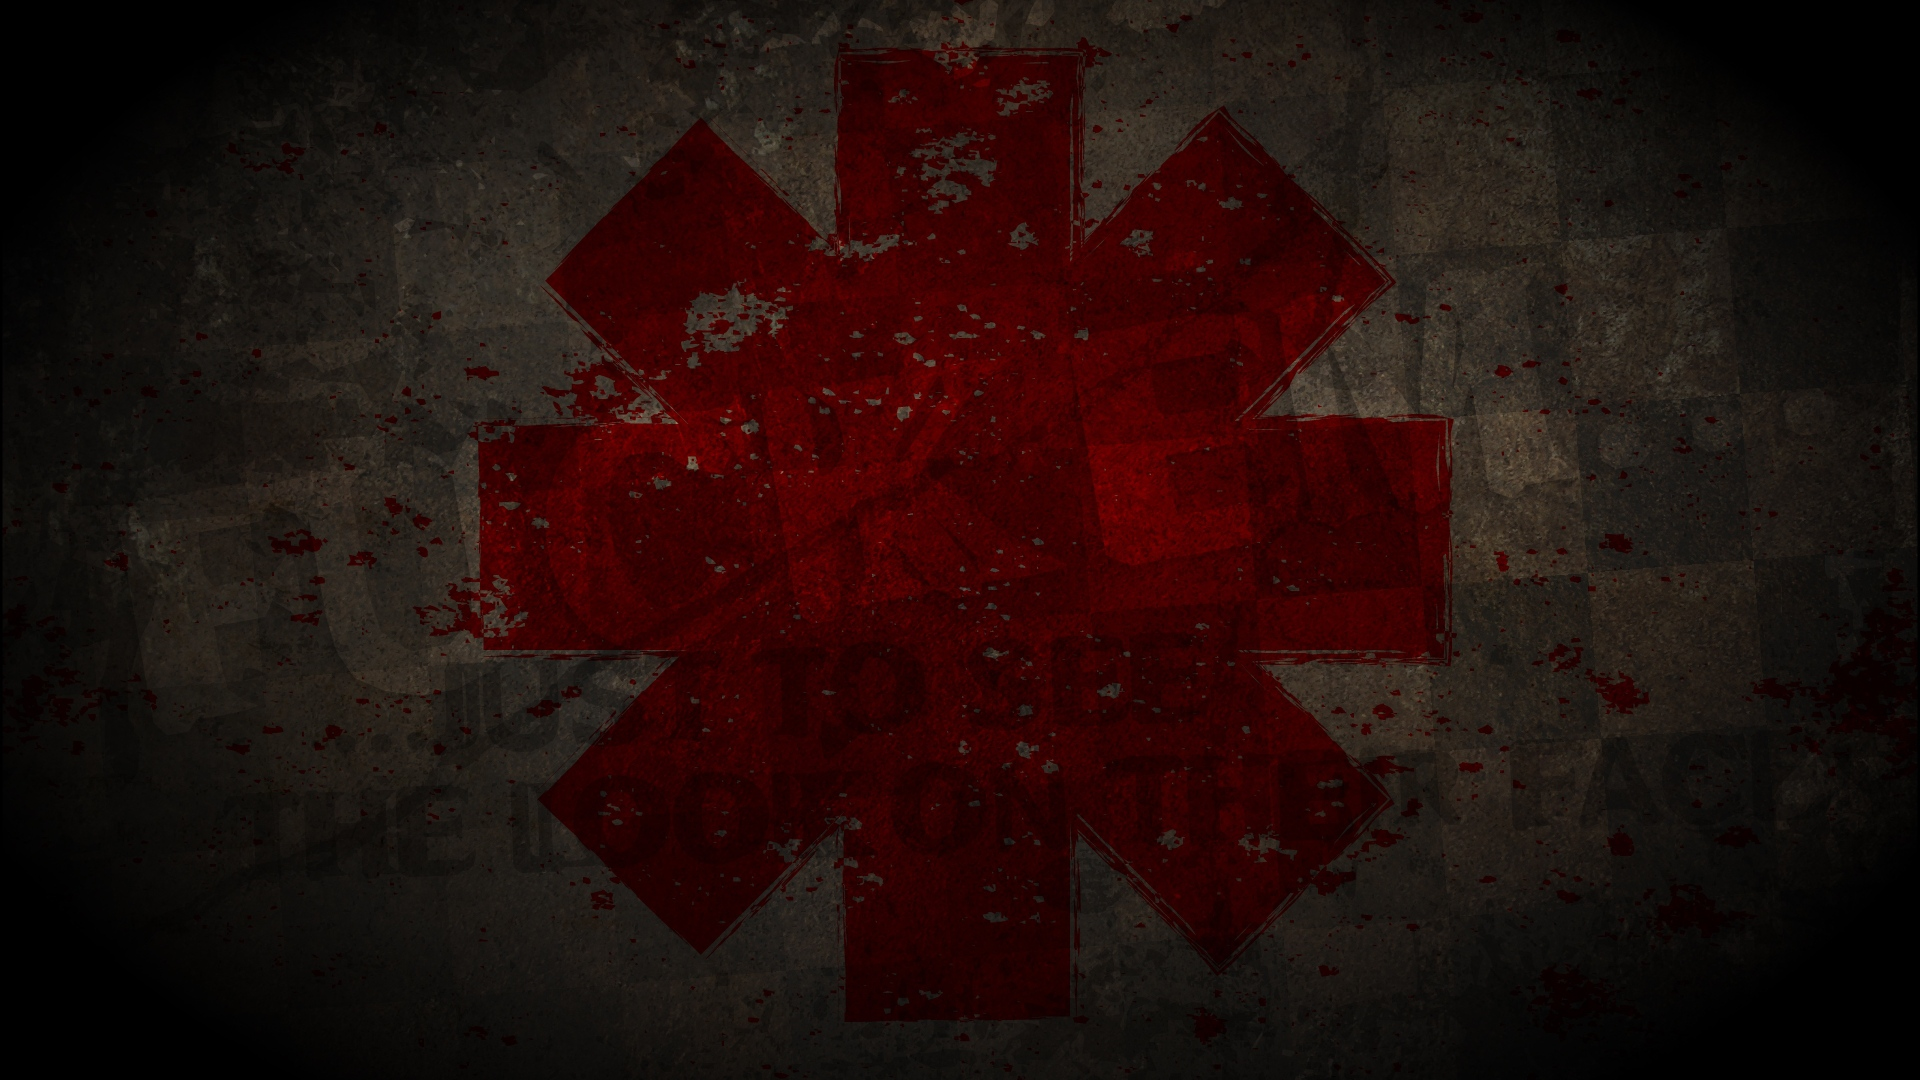 Download Wallpaper 1920x1080 Red Hot Chili Peppers Symbol